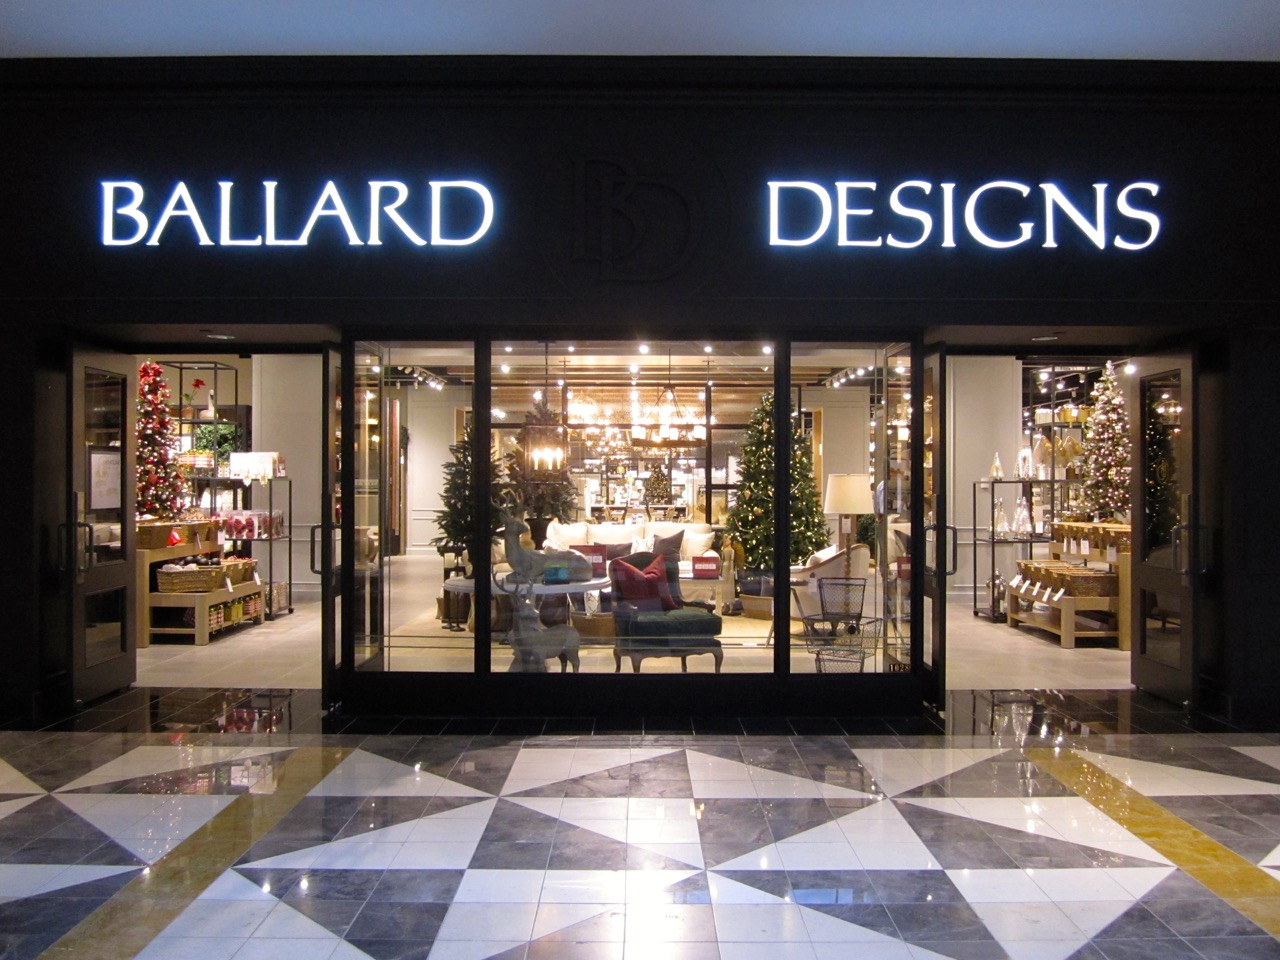 Home Office Design Layout Ideas Ballard Designs King Of Prussia Pa Impact Storefront